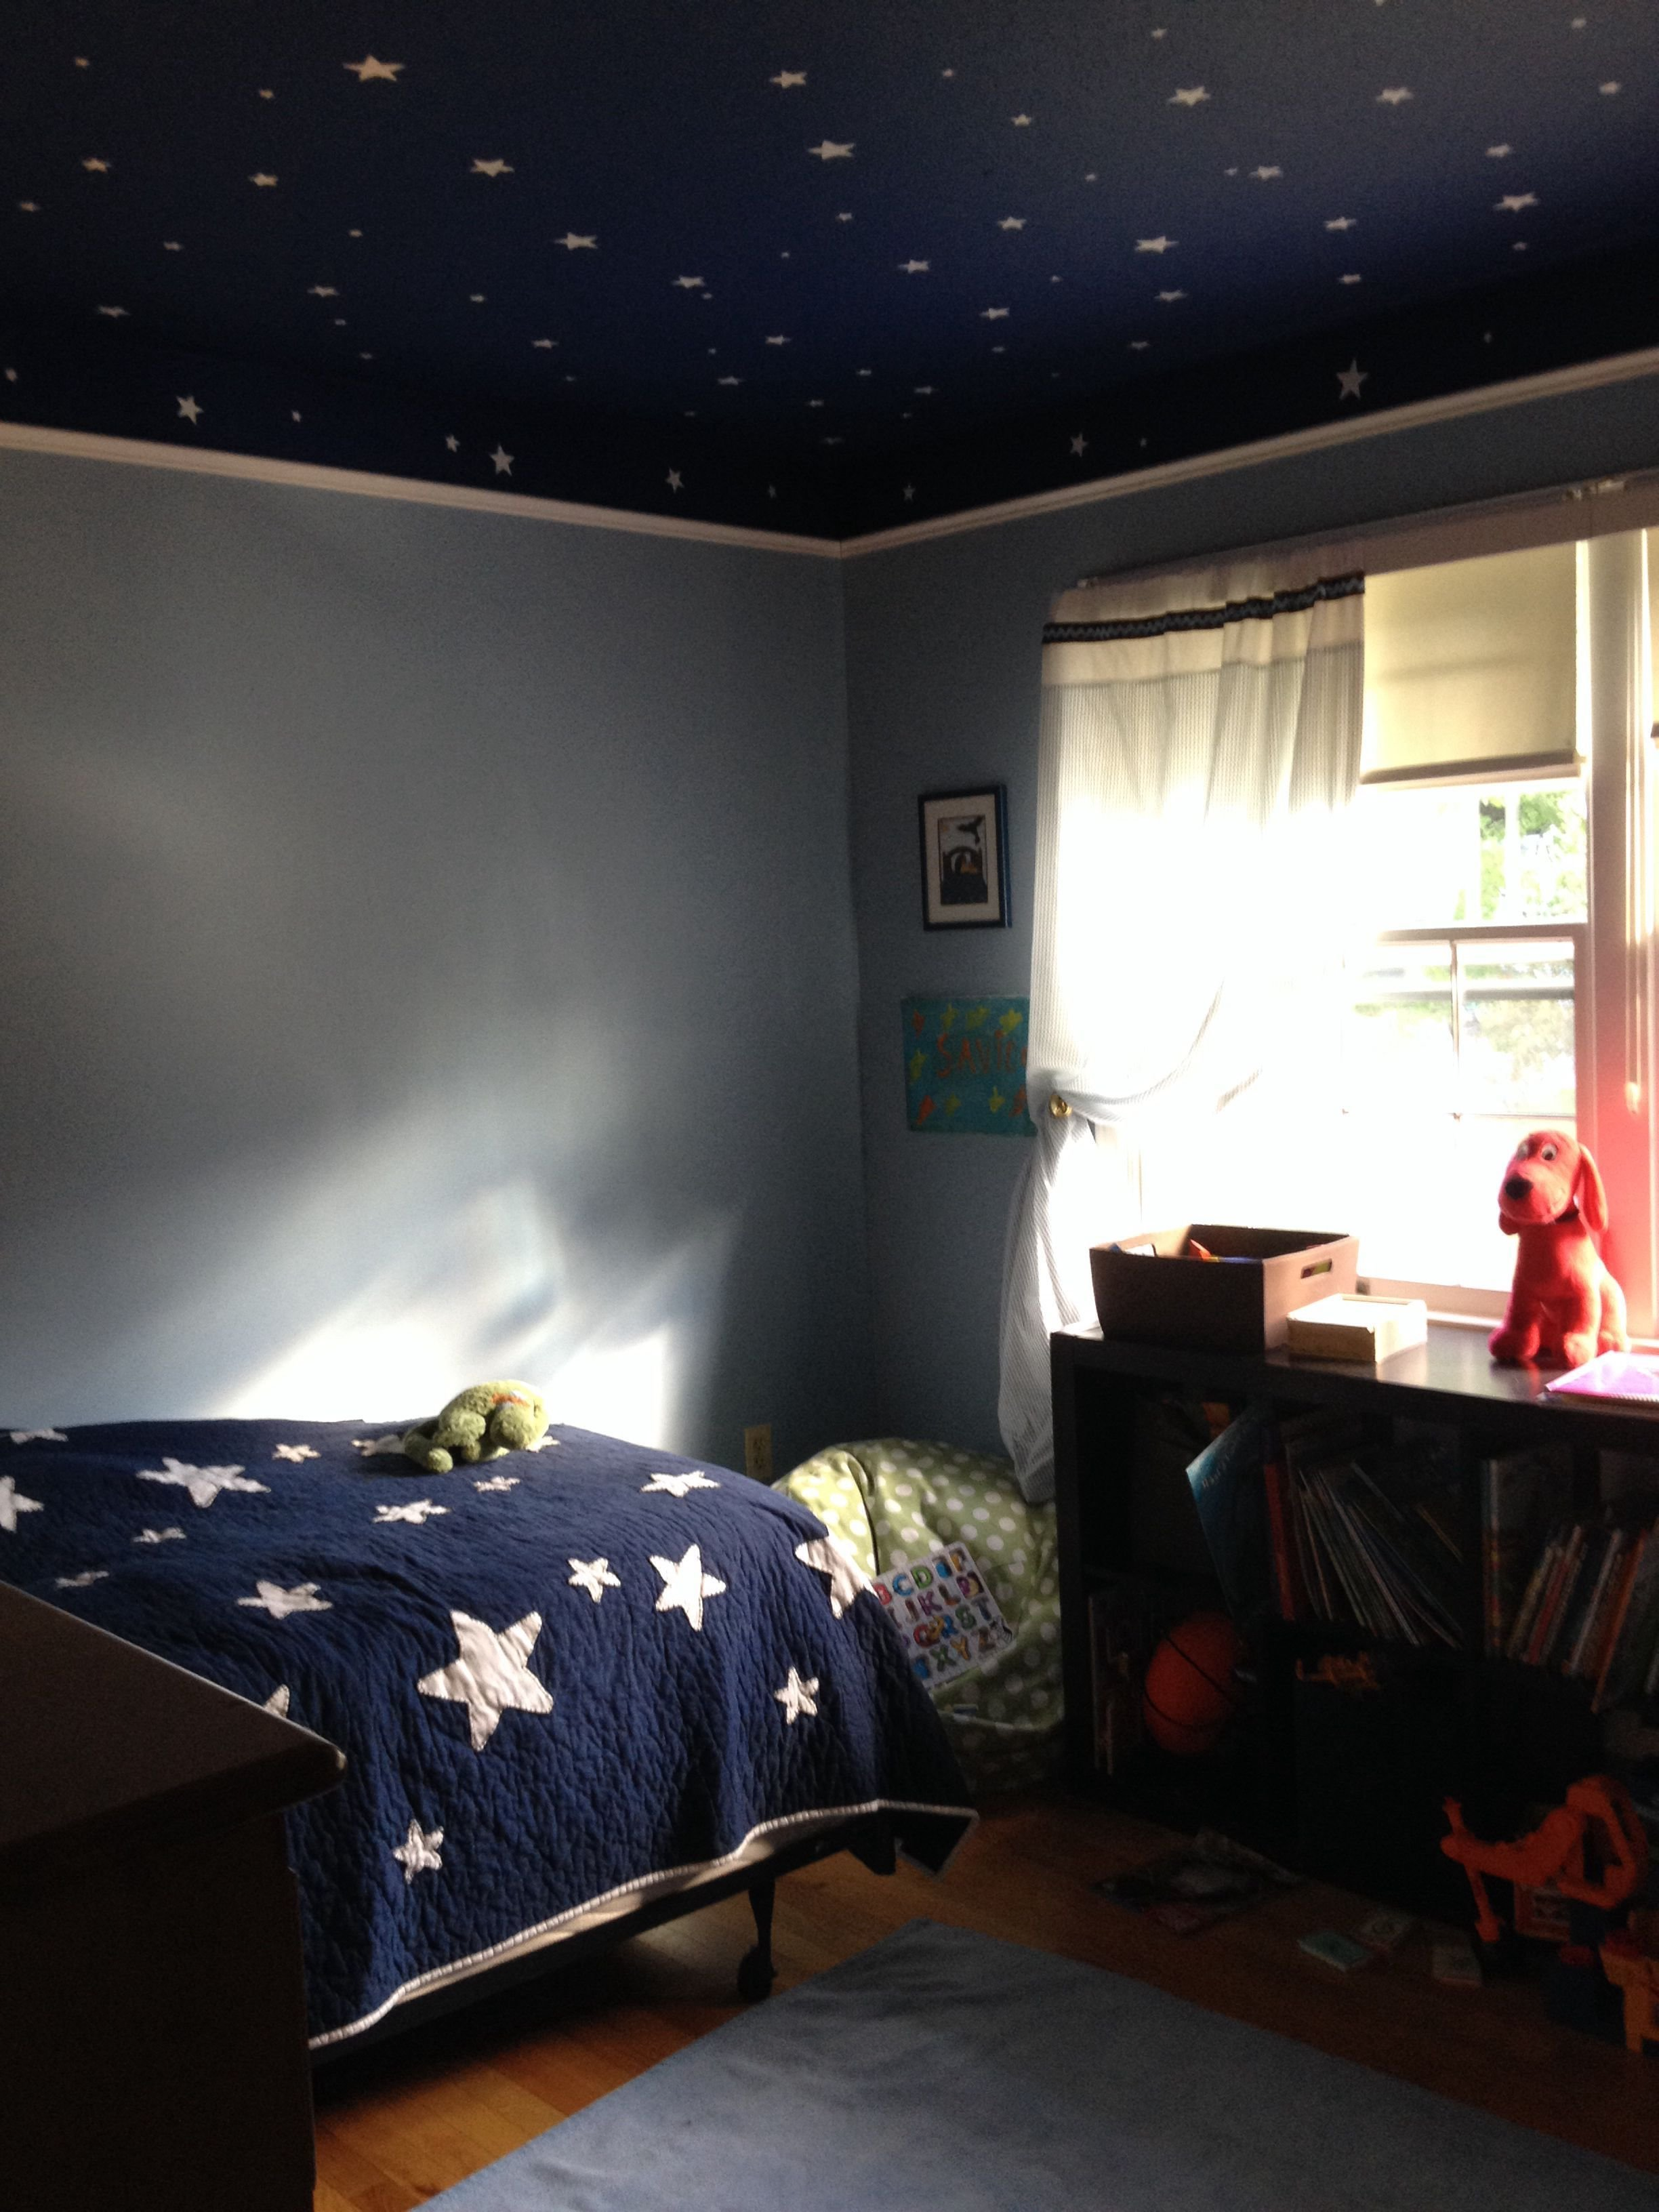 Best 4 Year Old Space Room I Love The Walls And Ceiling With Pictures